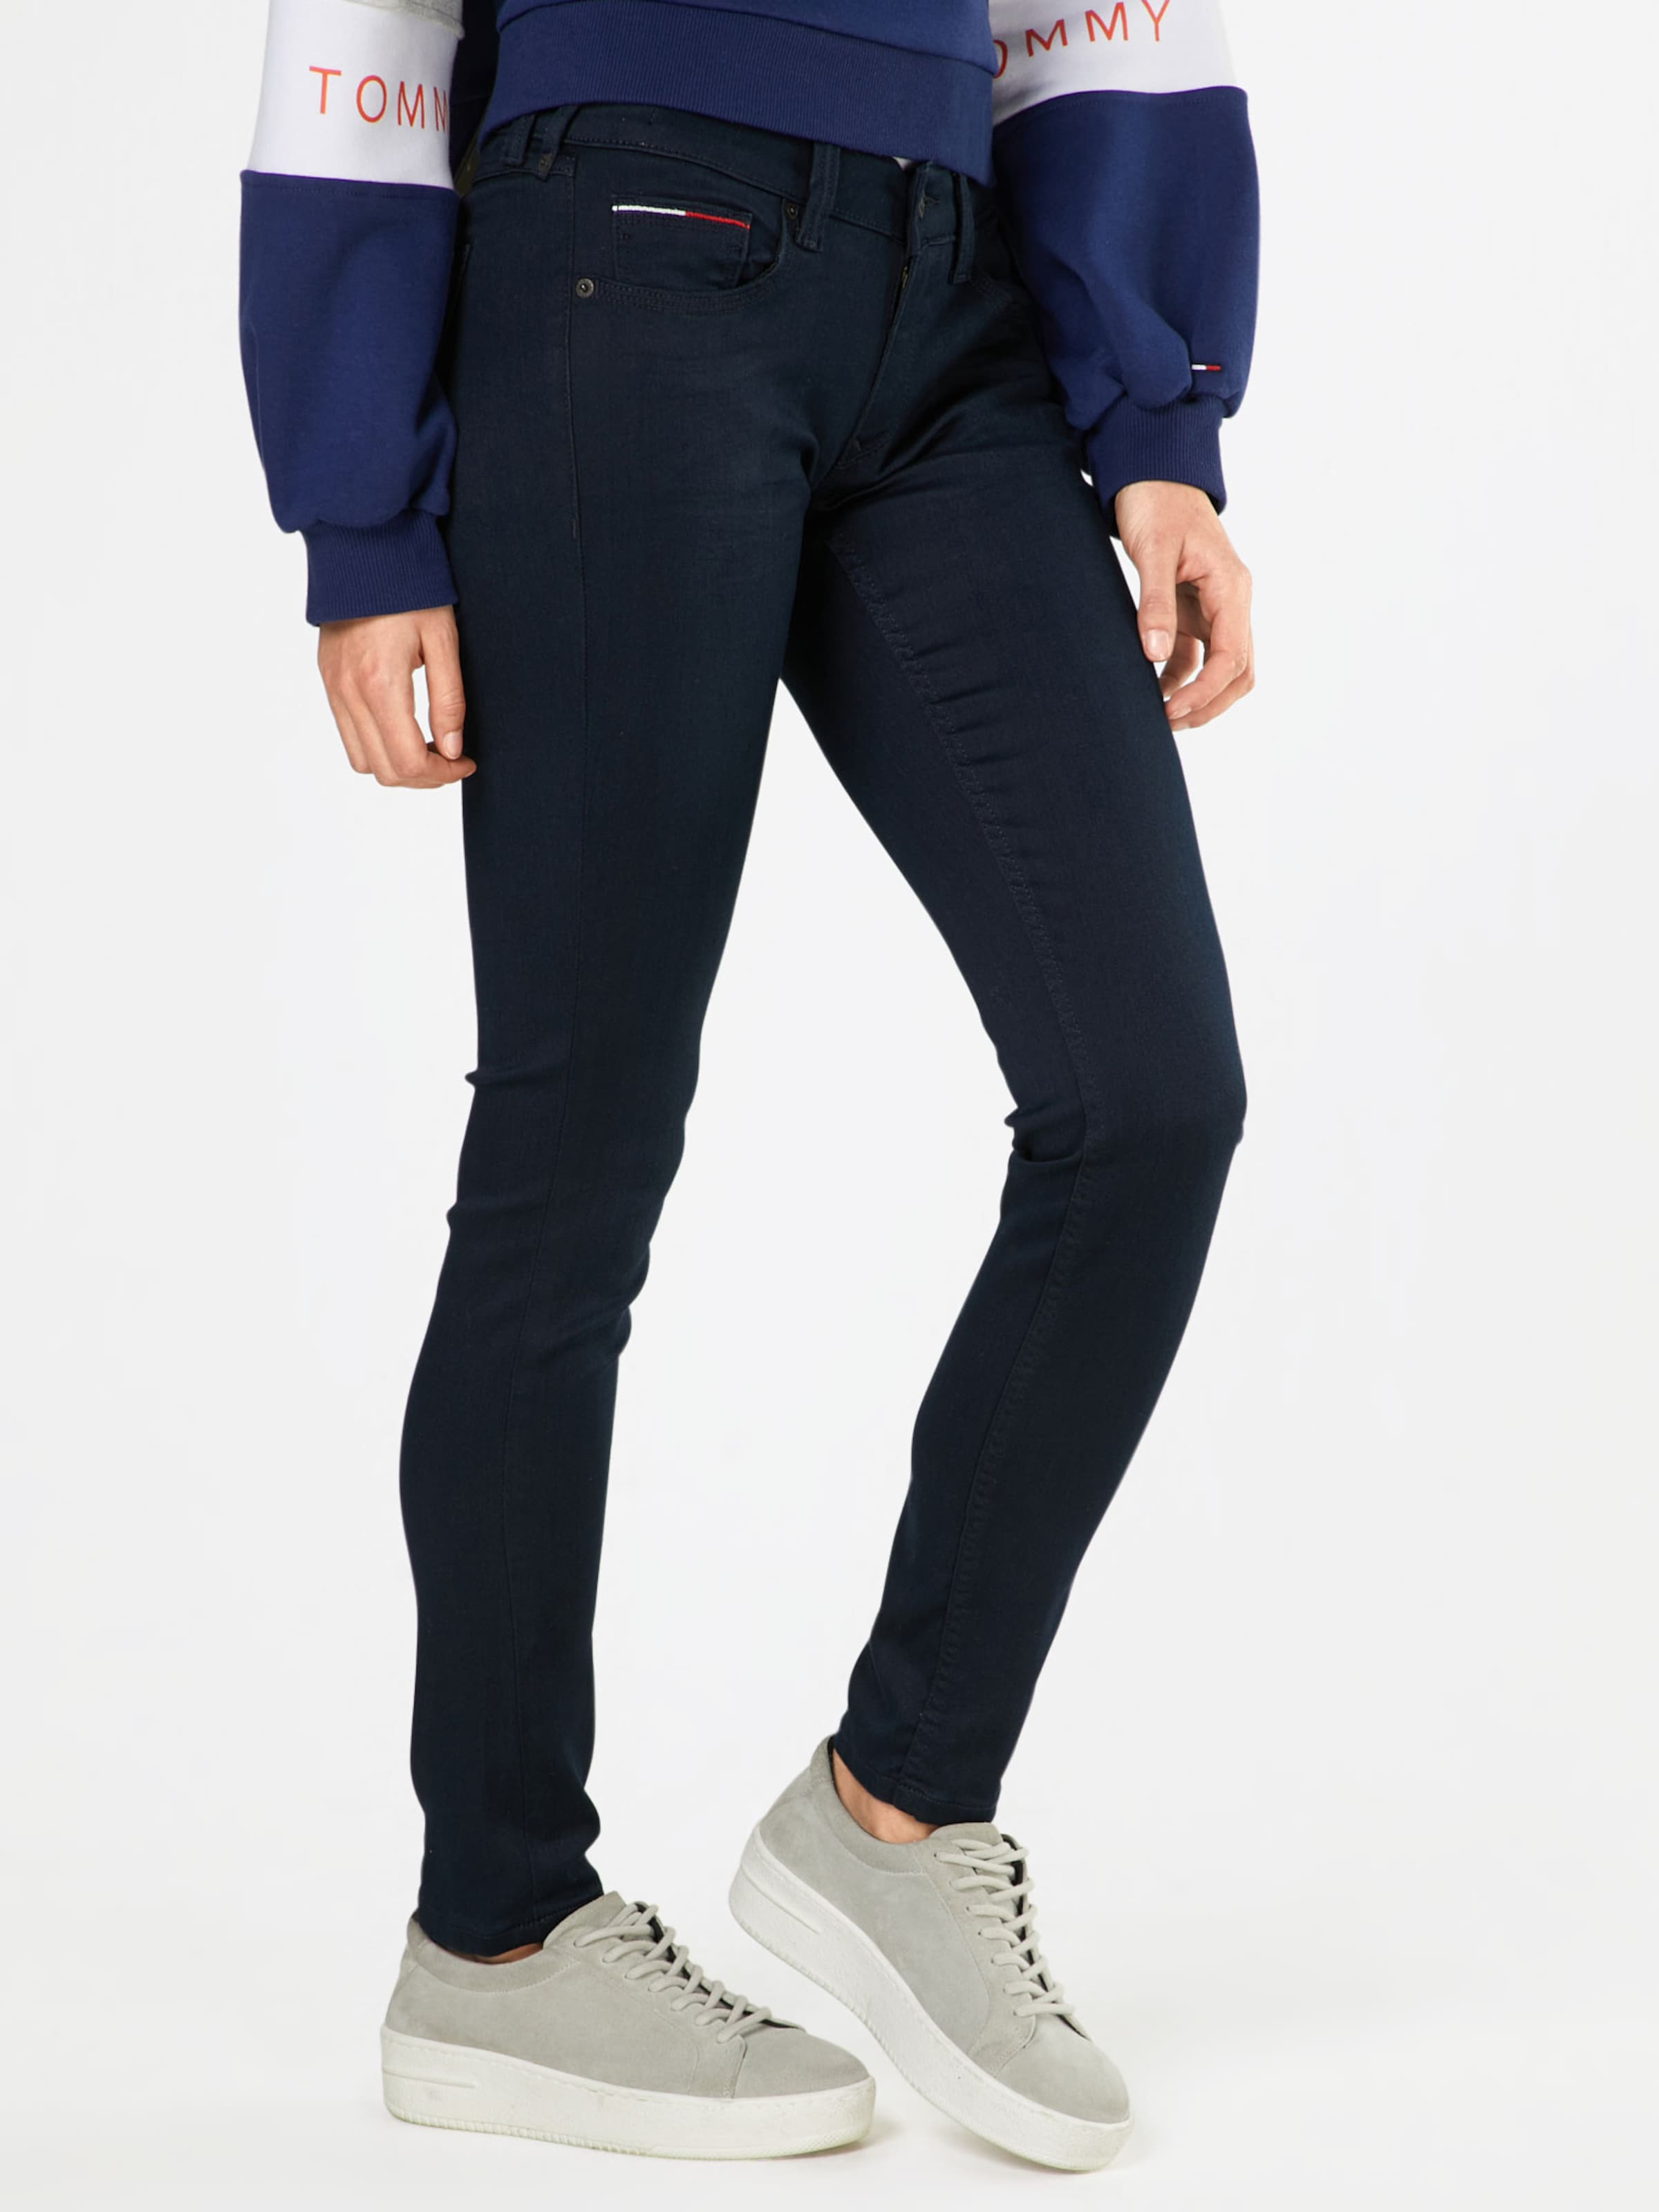 Jeans Tommy In Scst' Donkerblauw 'sophie kuTOPXZi